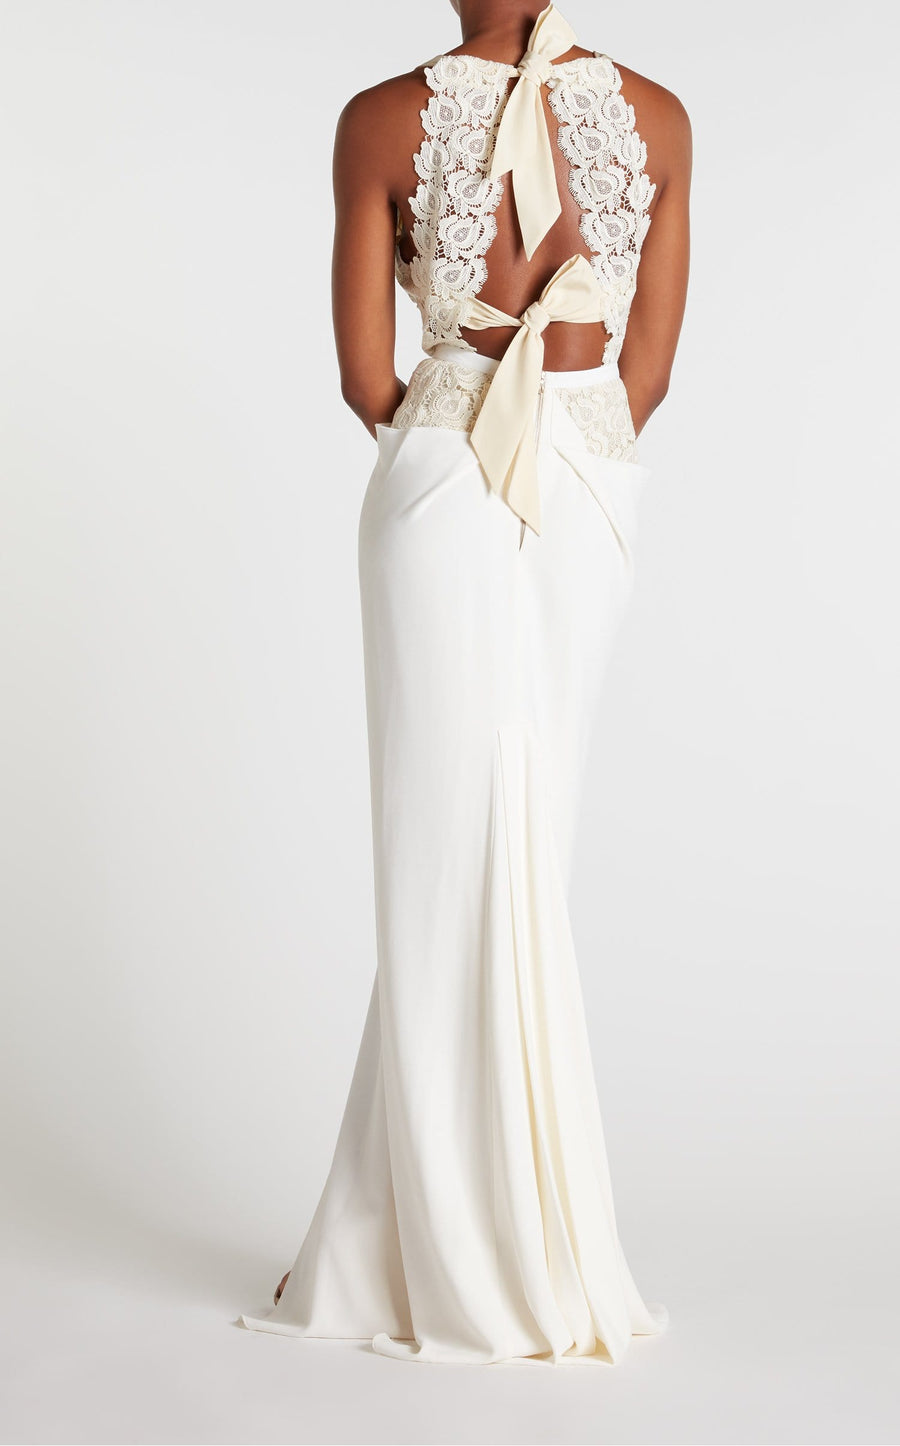 Hexam Gown In White from Roland Mouret